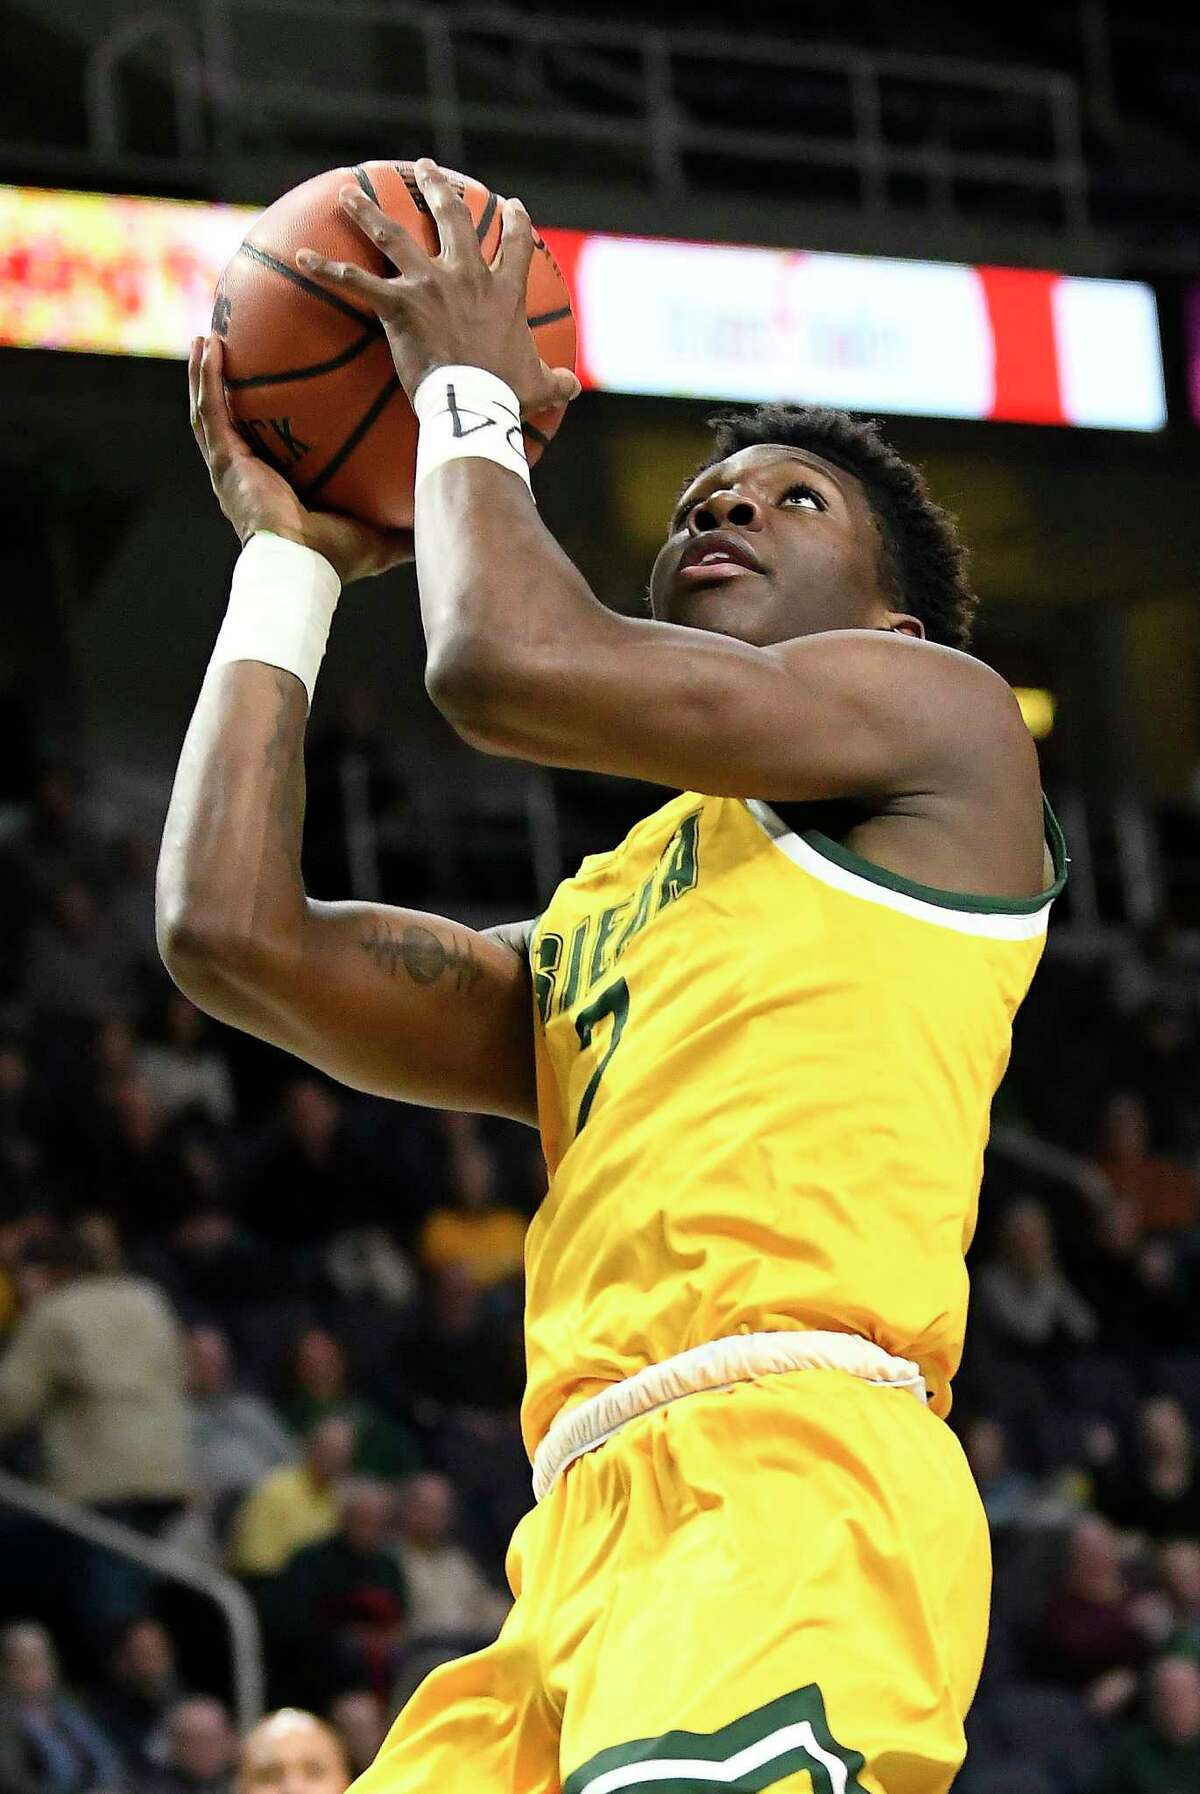 Siena guard Gary Harris Jr. (2) scores against Rider during the first half of an NCAA basketball game Friday, Feb.14, 2020, in Albany, N.Y. (Hans Pennink / Special to the Times Union) ORG XMIT: 021520_siena_HP113